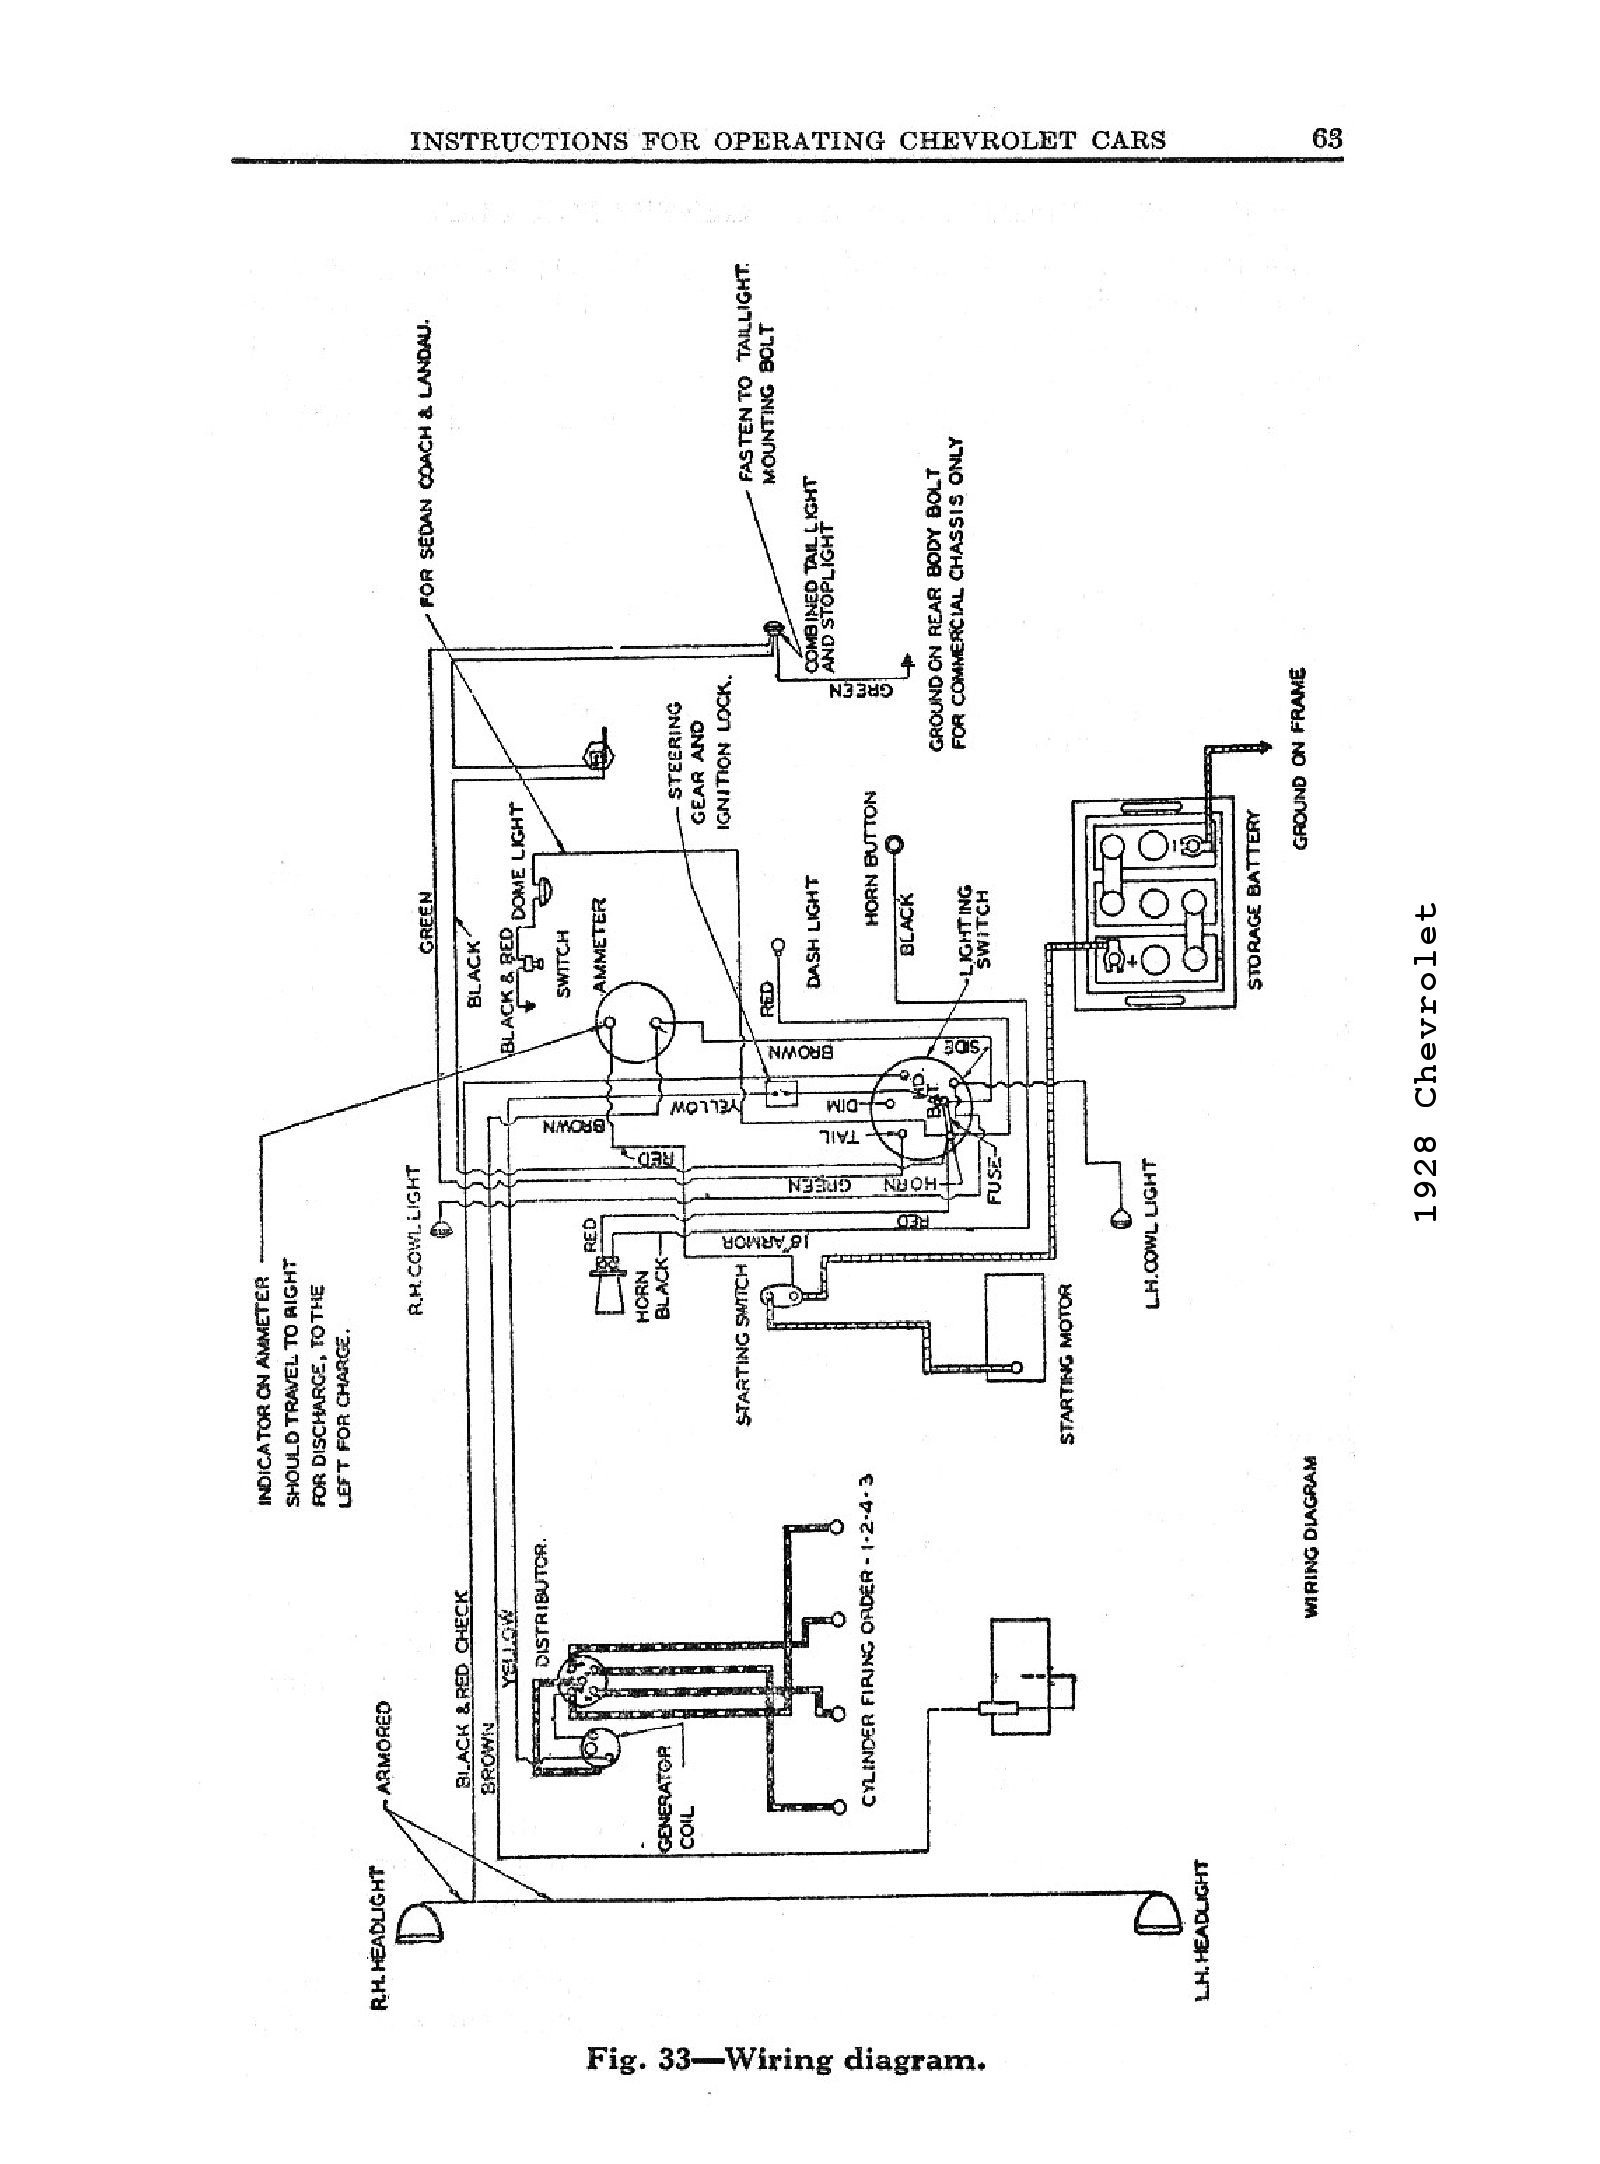 Back Up Lamp Circuit Diagram For The Chevrolet Impala